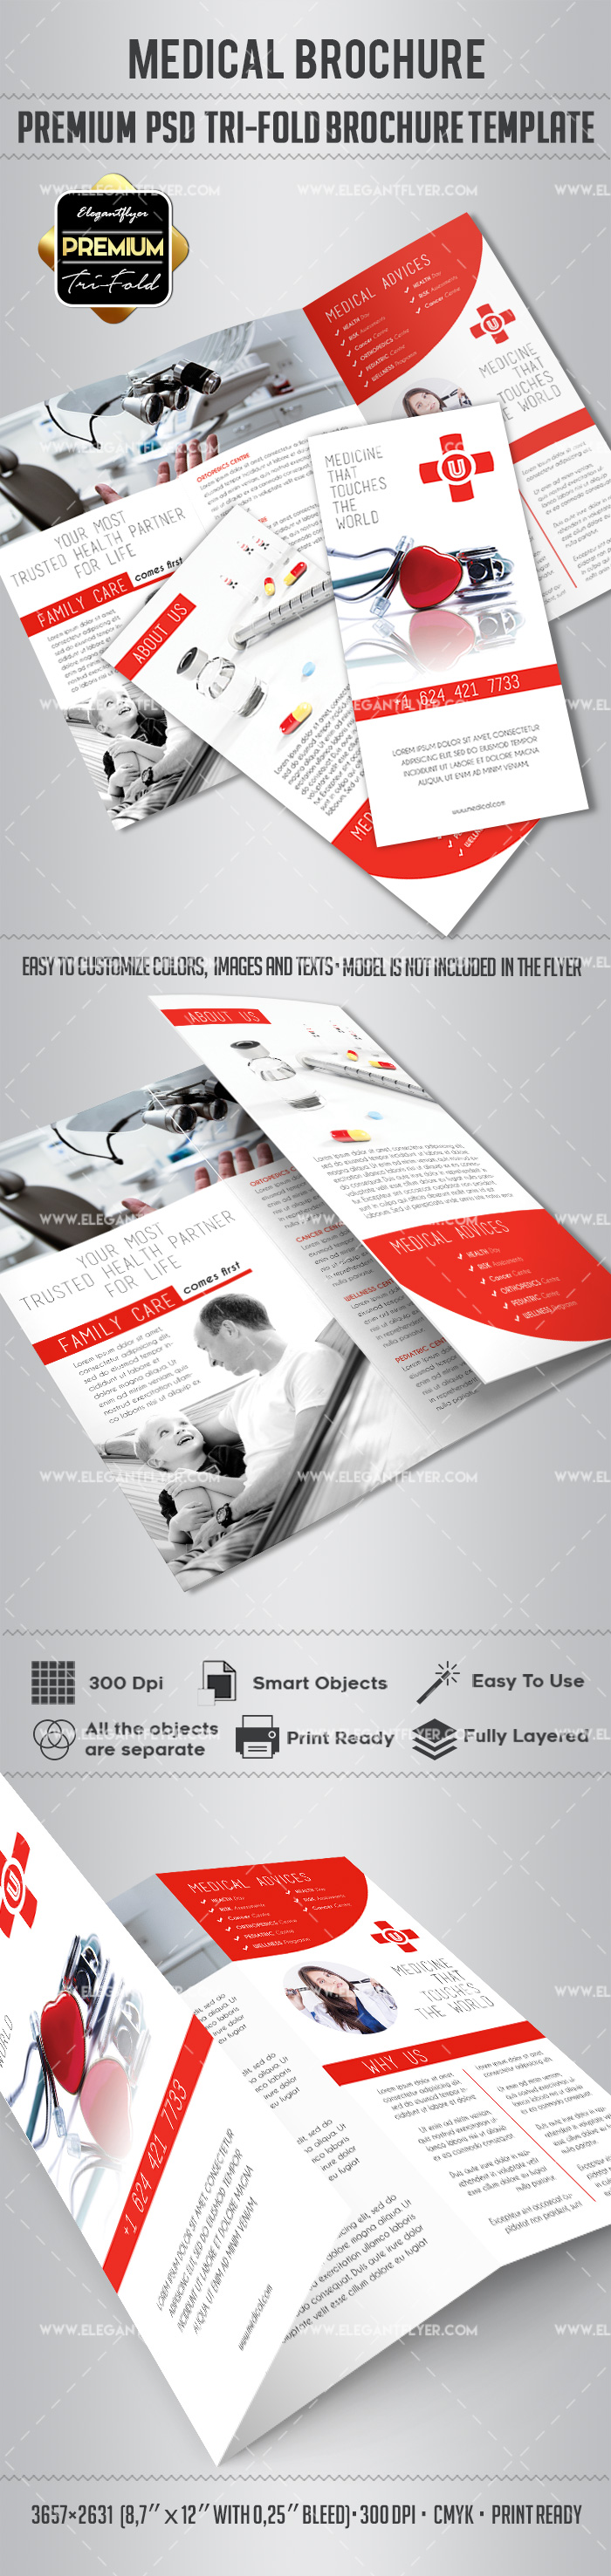 medical tri fold brochure templates for free - medical tri fold brochure by elegantflyer